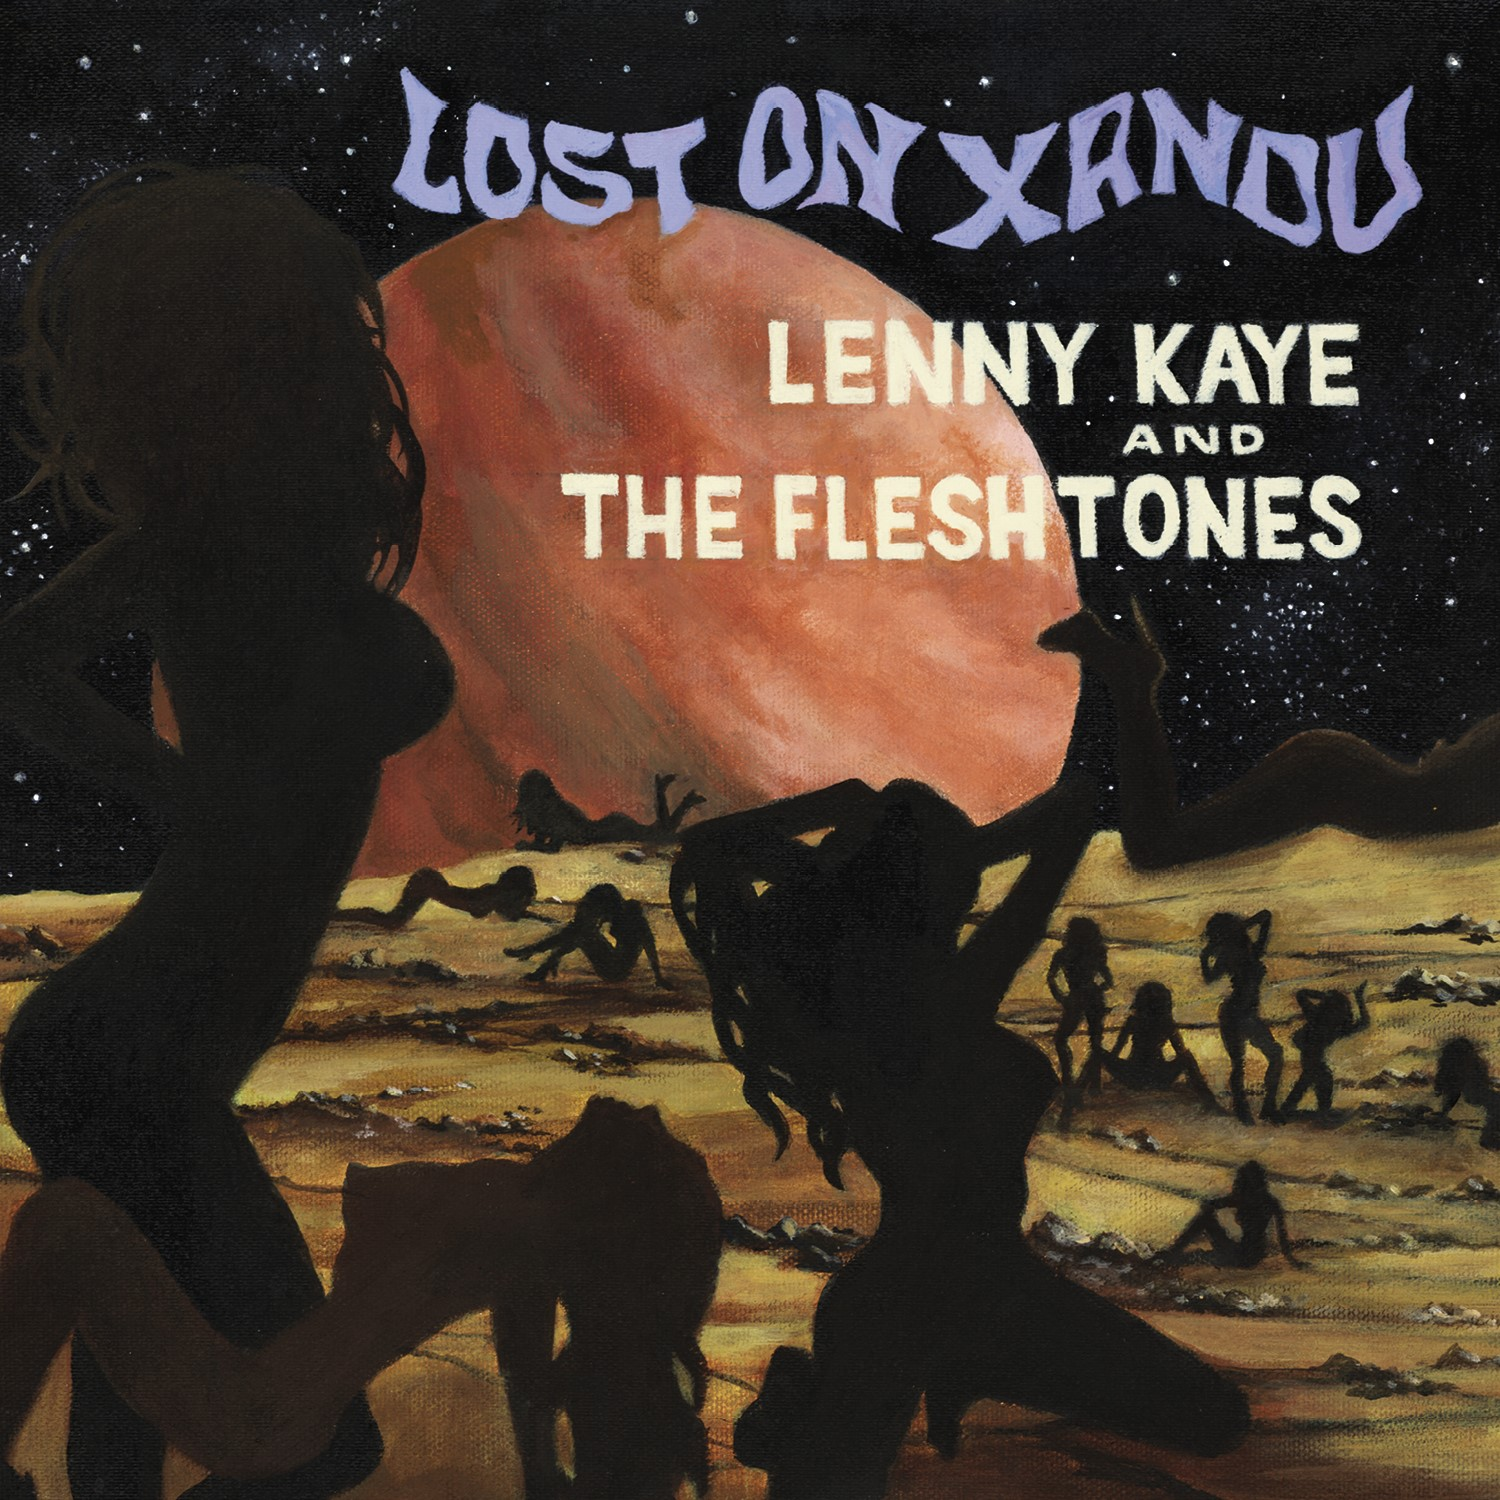 The Fleshtones - Lost on Xandu [RSD BF 2019]